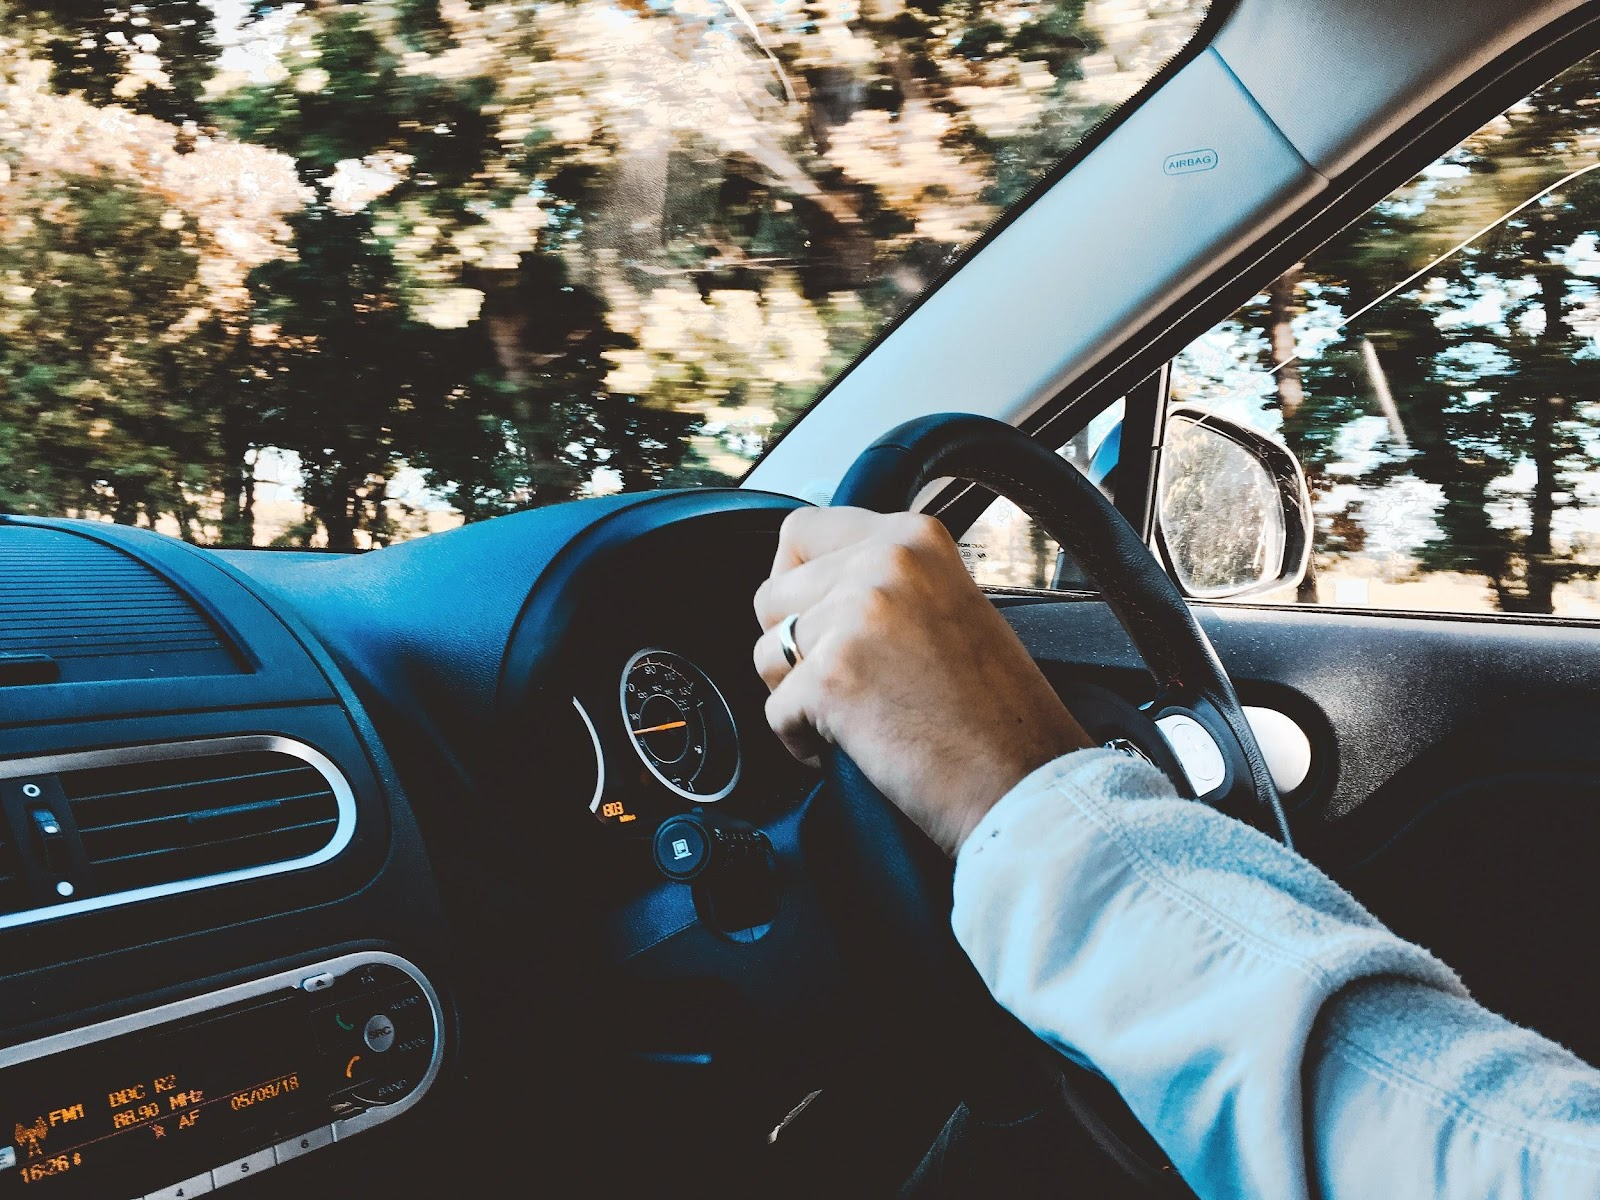 Change your driving habits